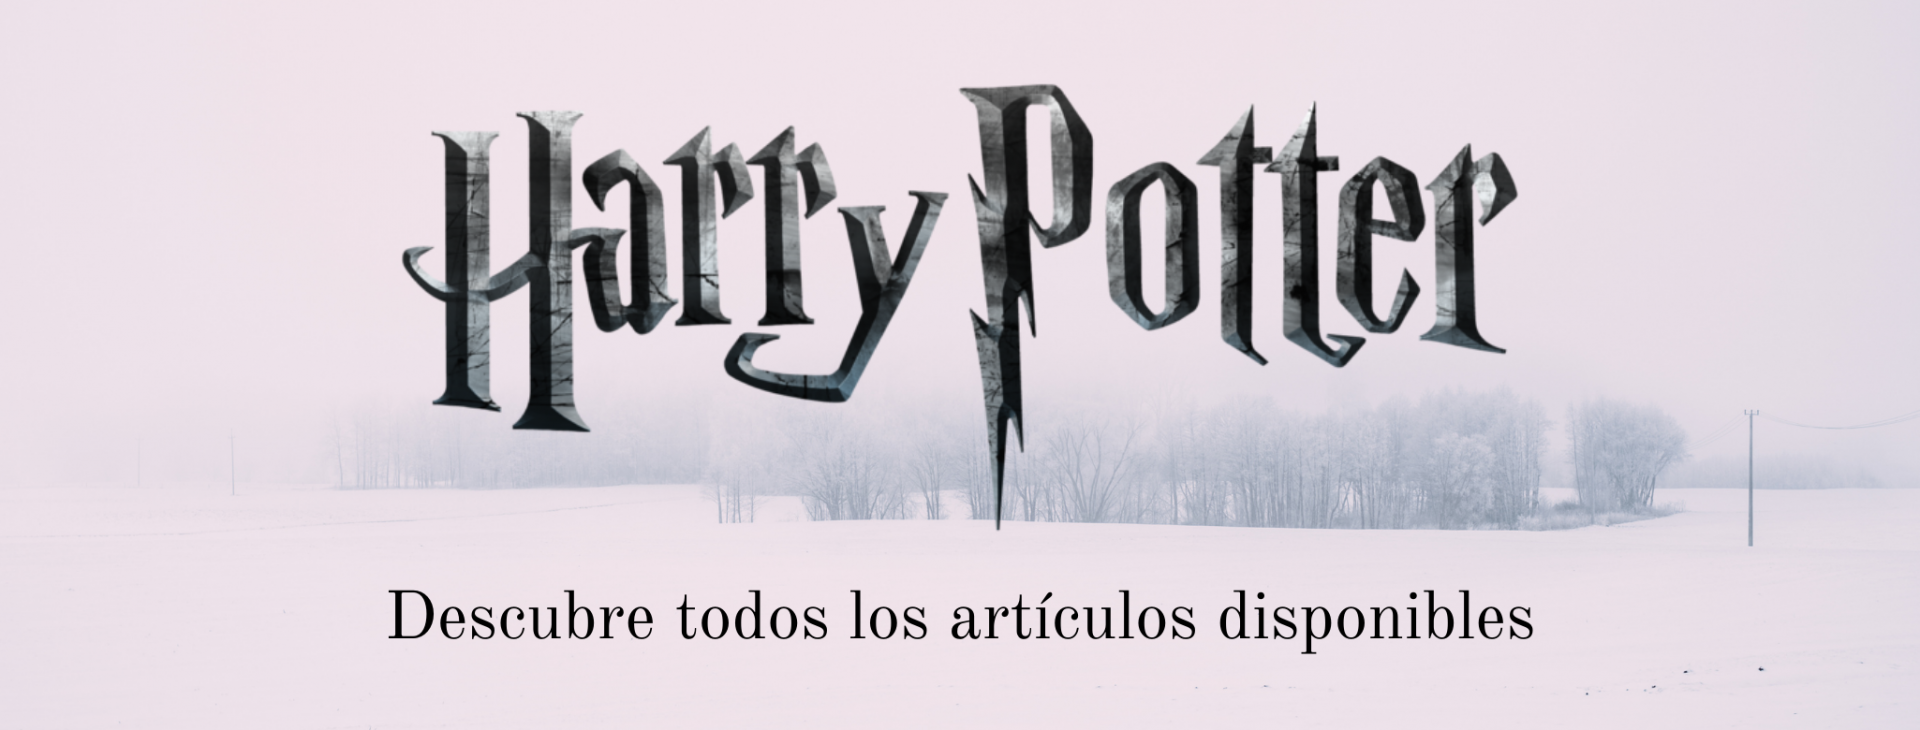 banner harry.png